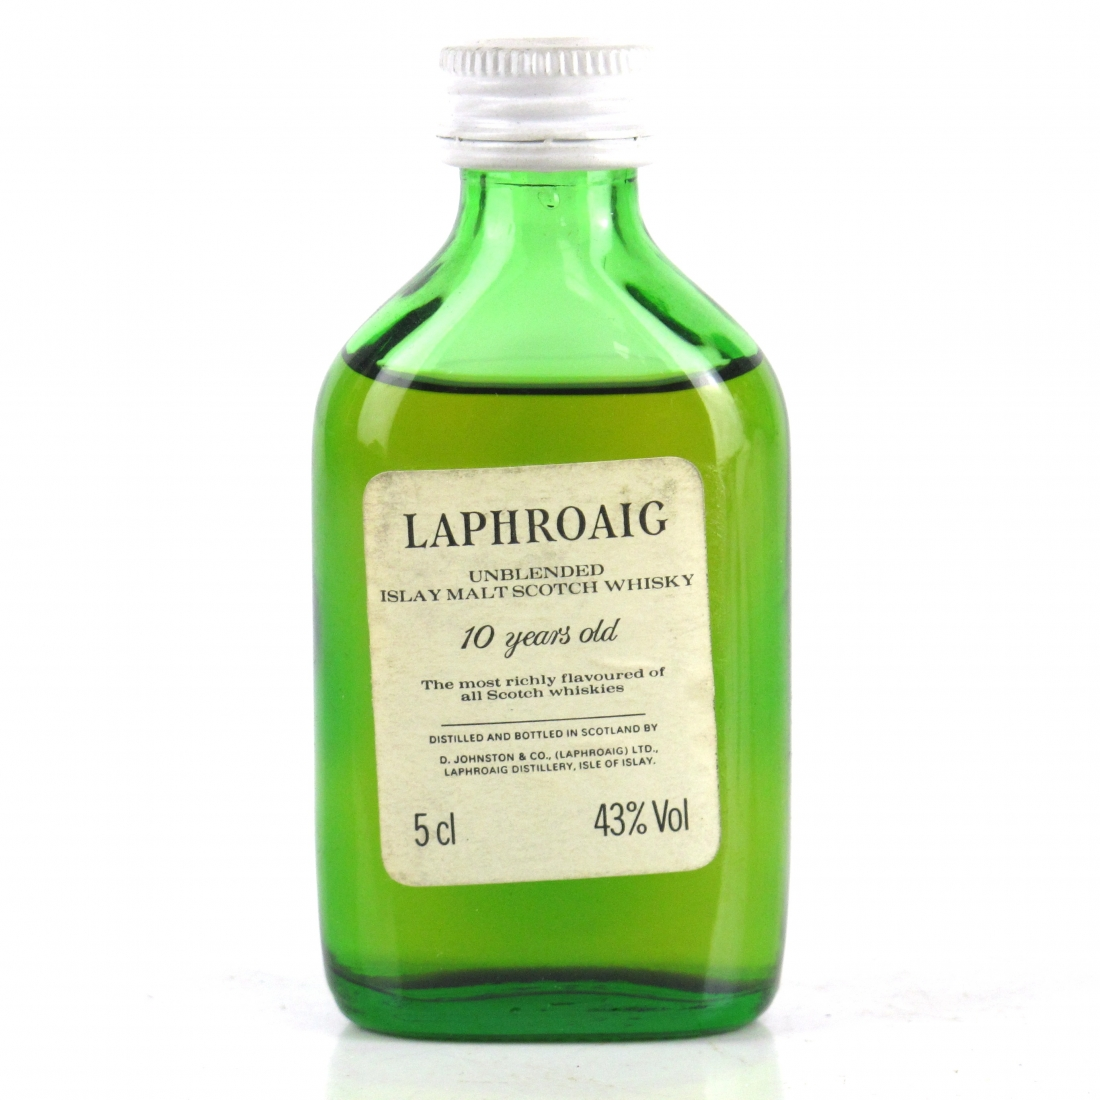 Laphroaig 10 Year Old Miniature 5cl 1980s